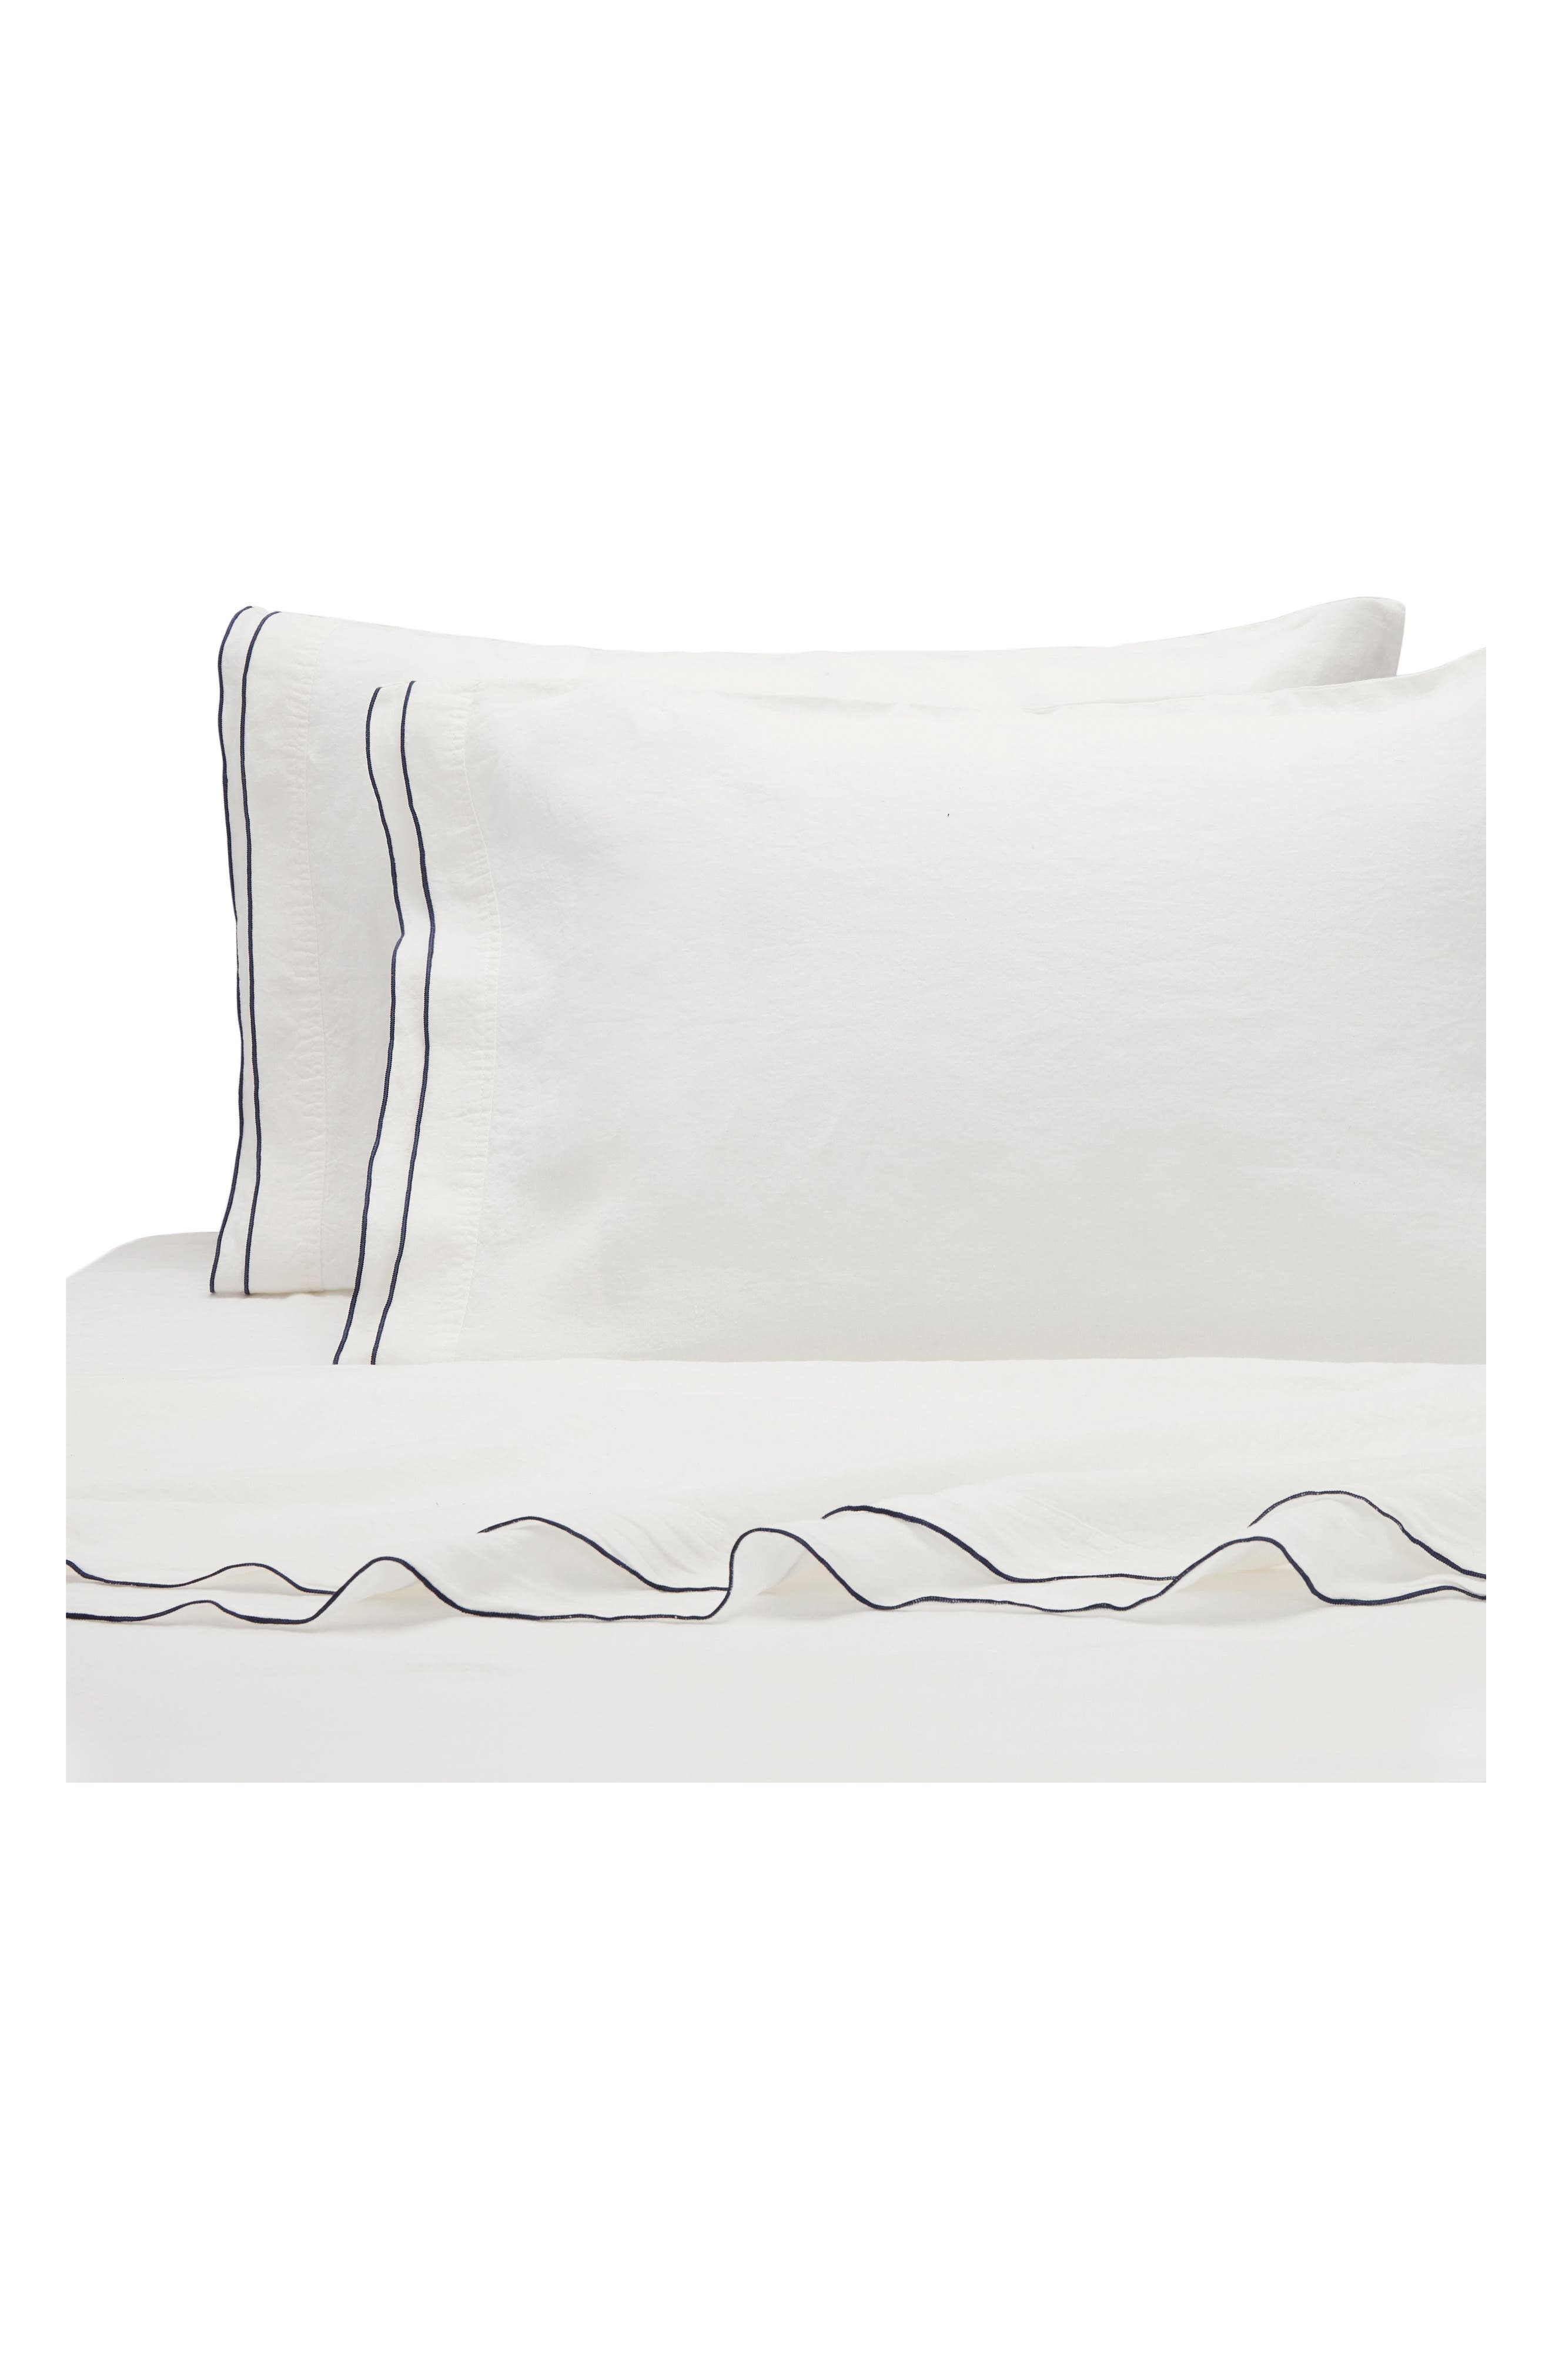 KASSATEX Biarritz Linen 300 Thread Count Pillowcase